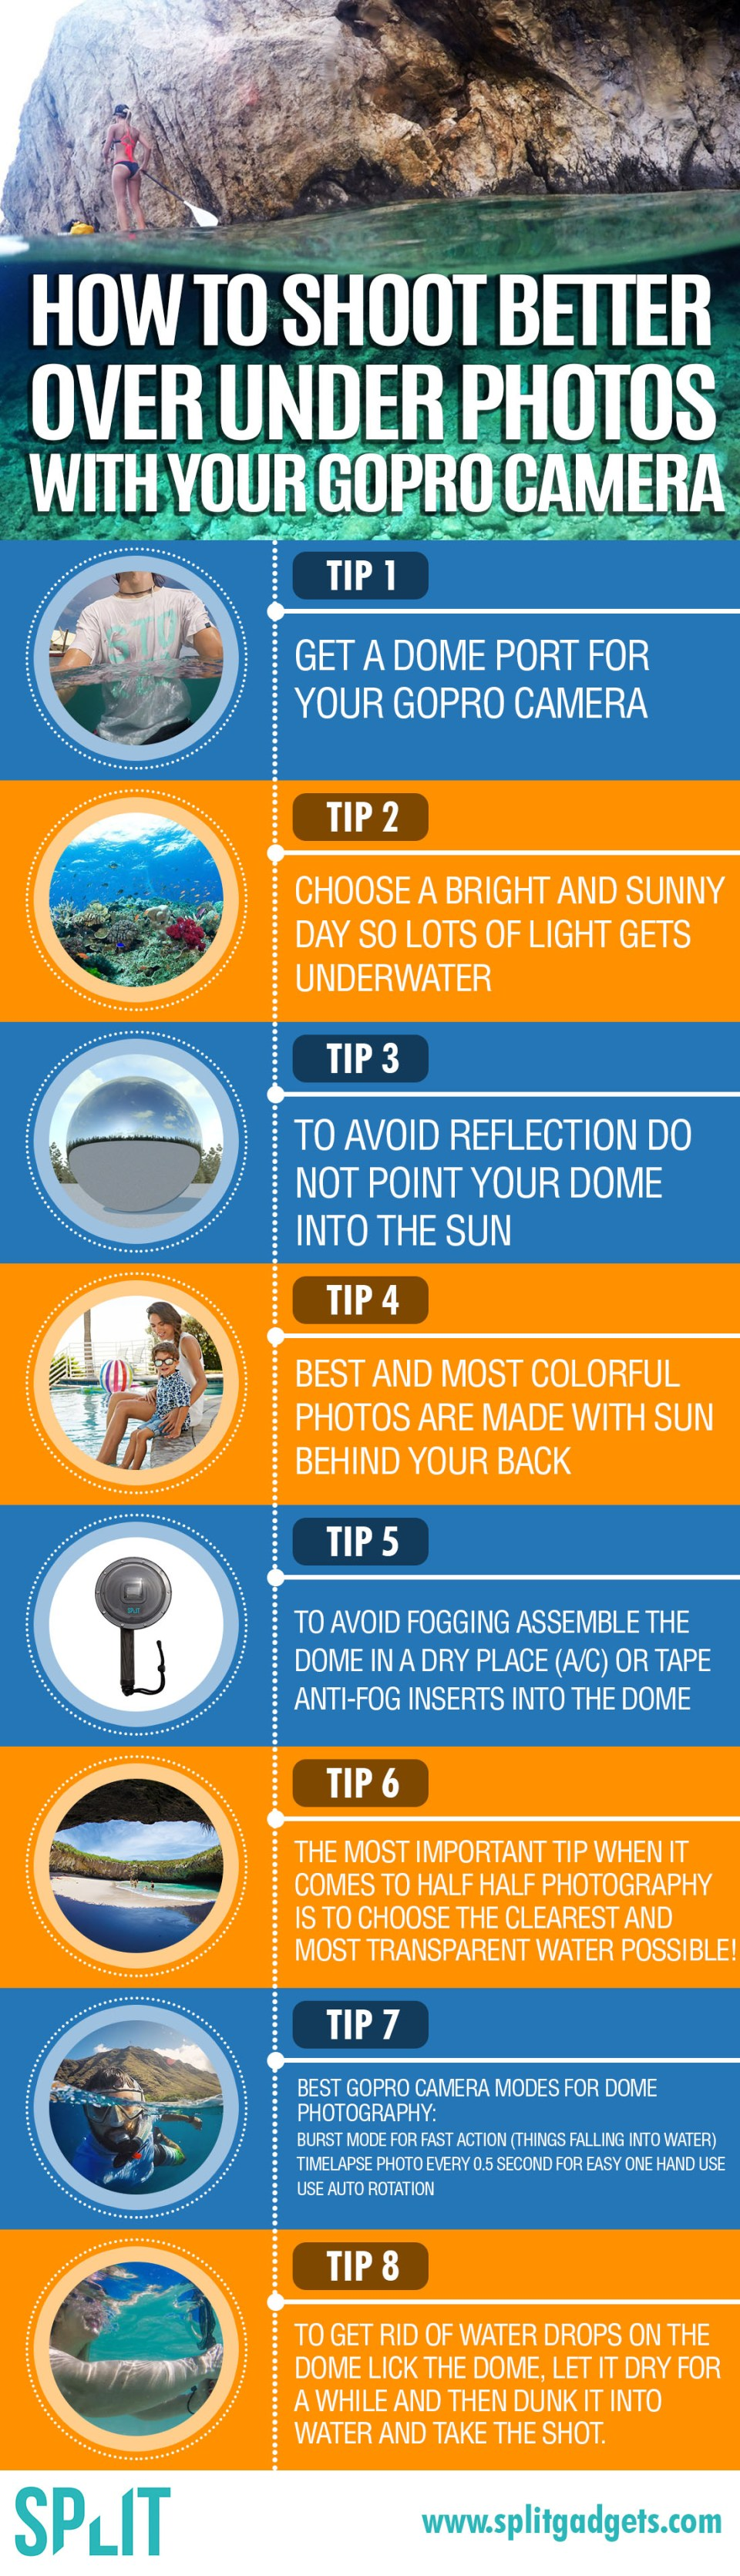 An infographic with tips on how to improve your half half GoPro camera photos